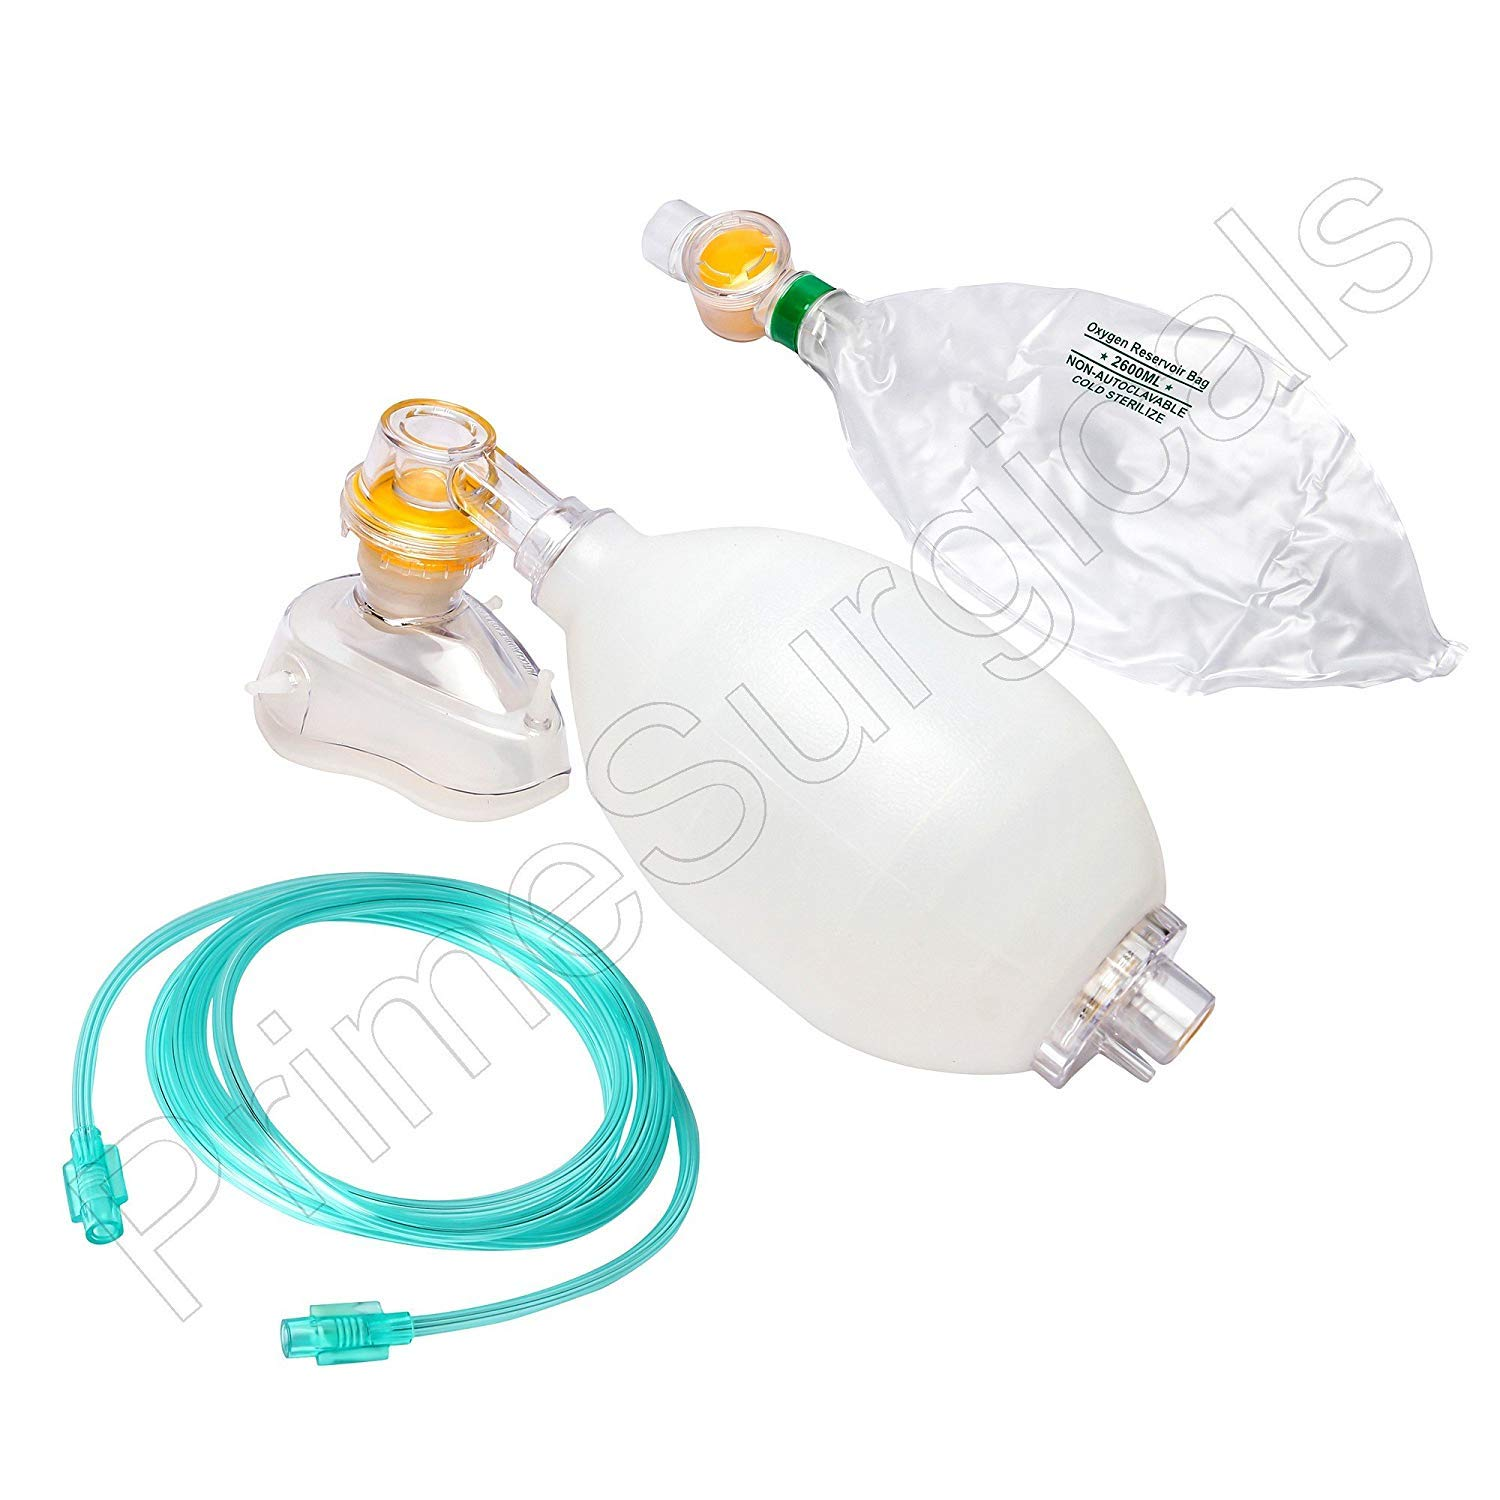 Anesthesia Equipment & Products